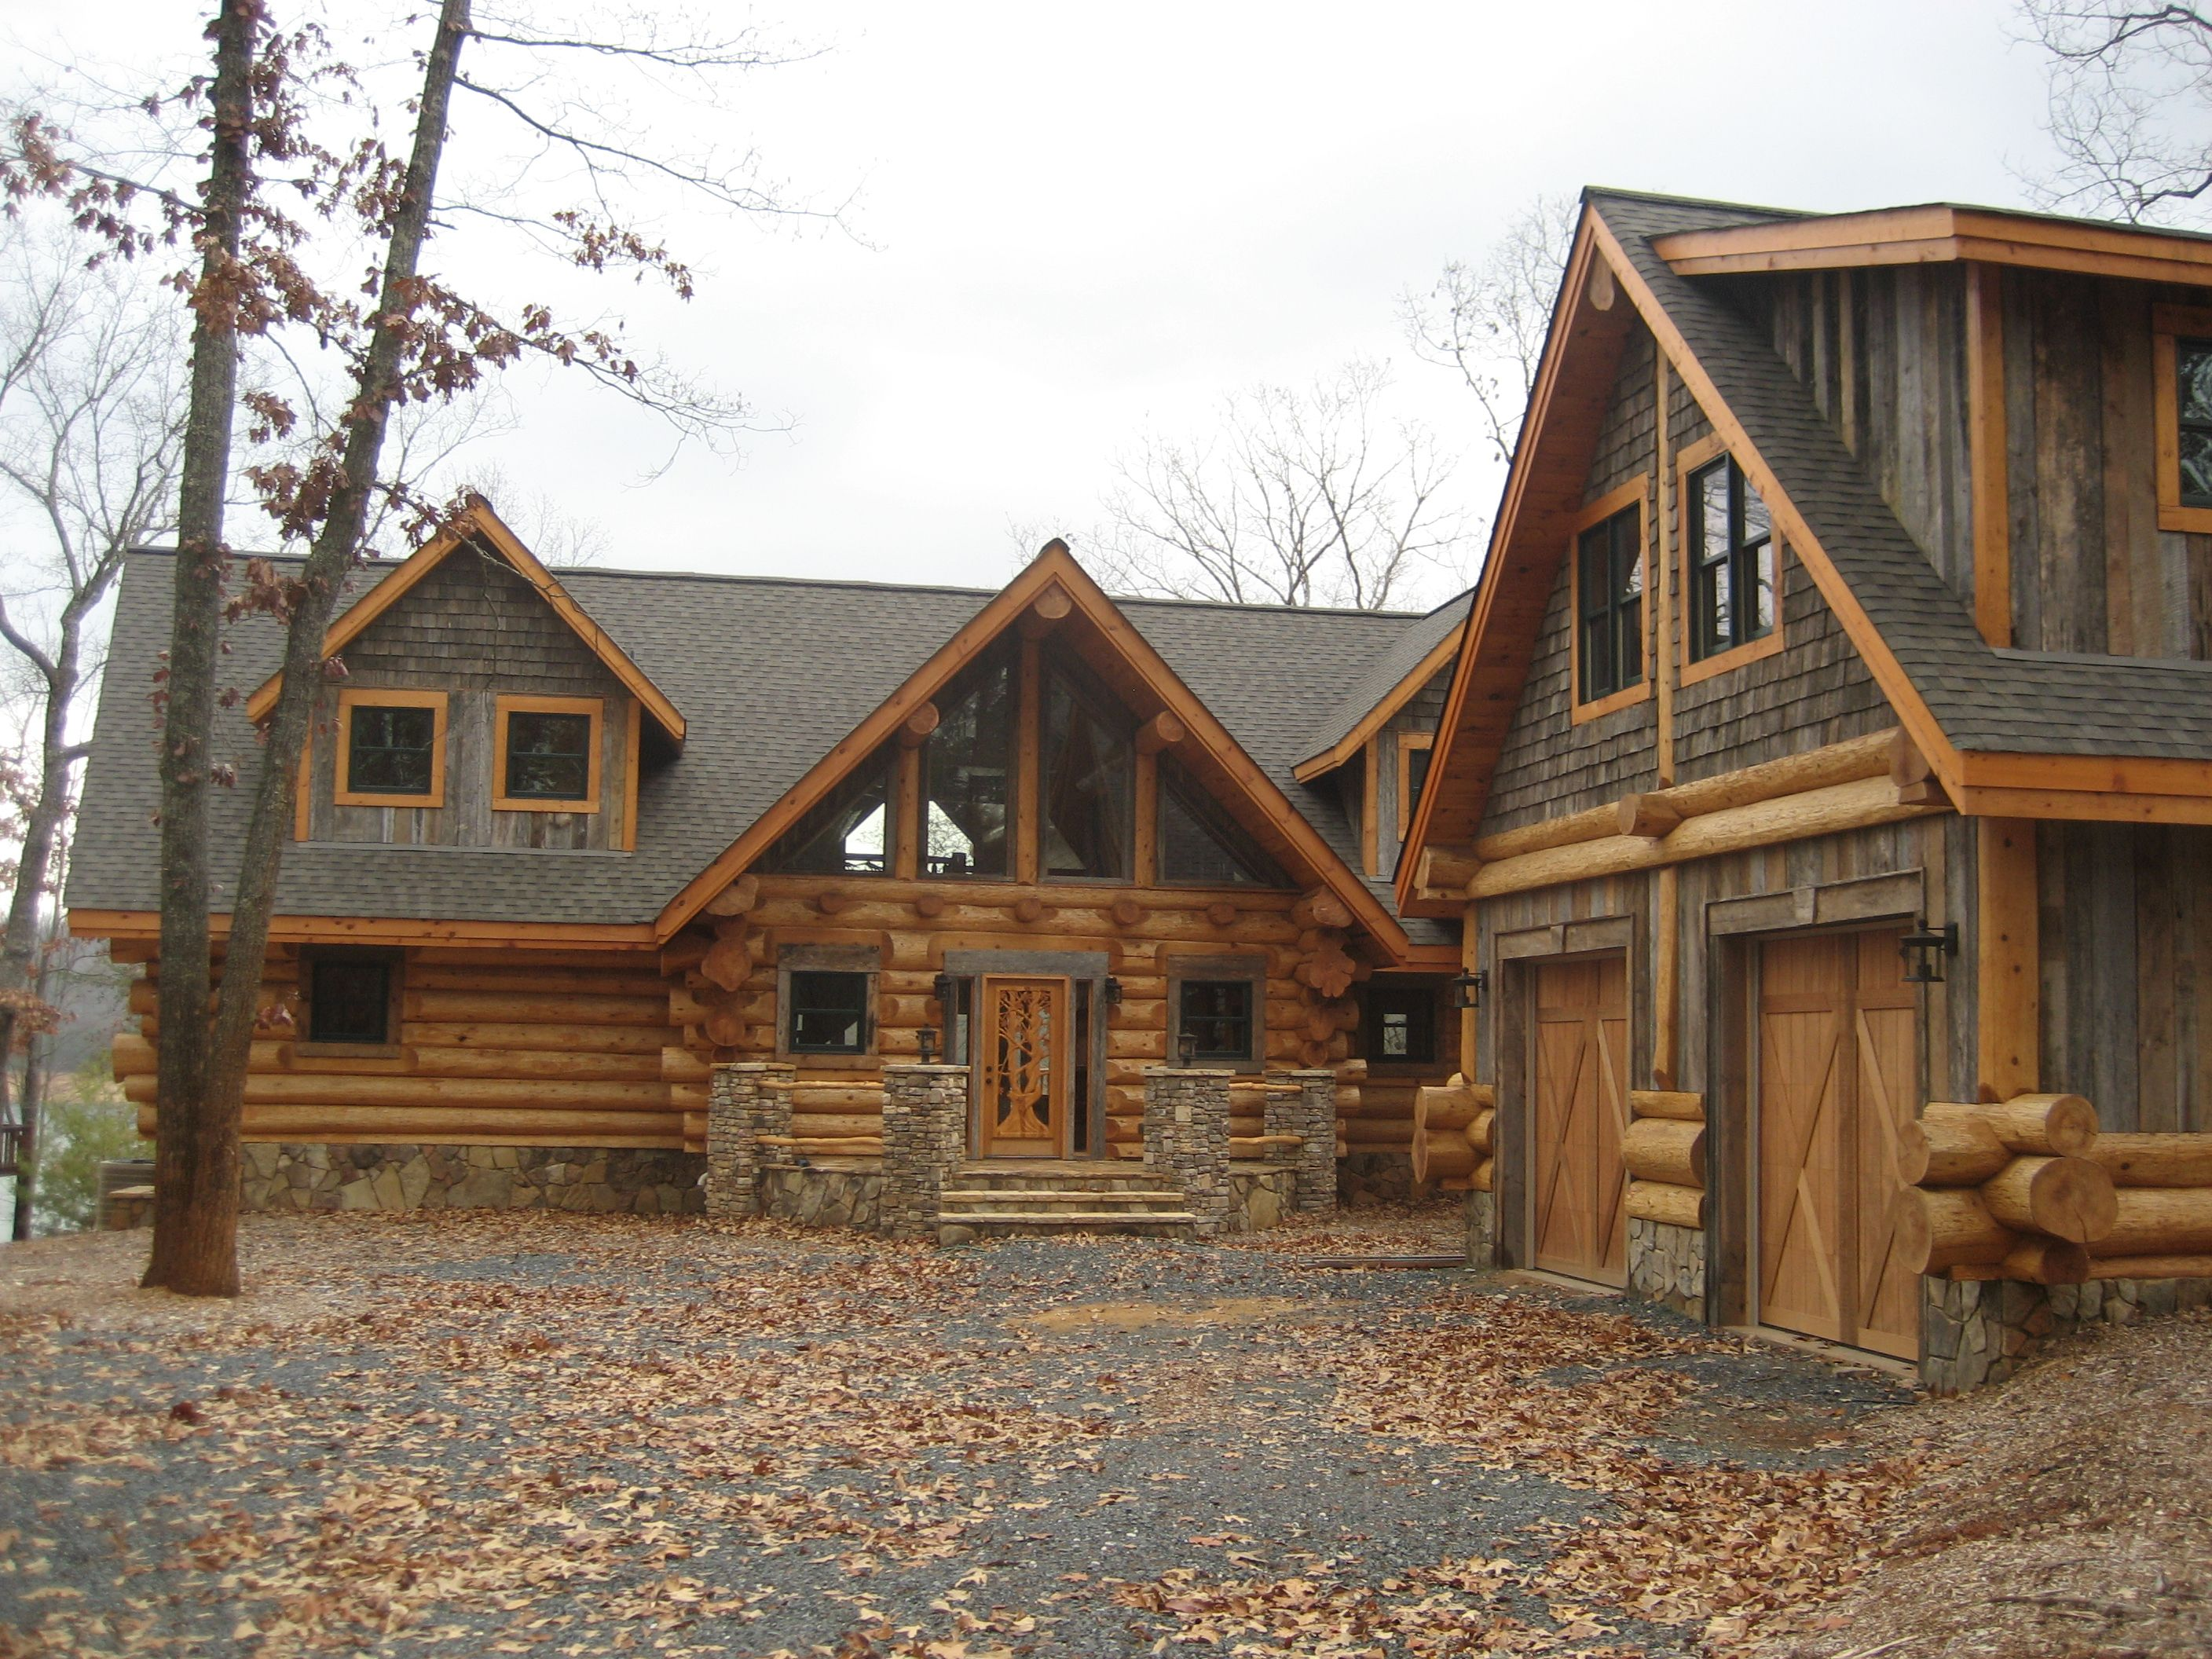 Exterior log homes canada dream house pinterest for Log home pictures exterior